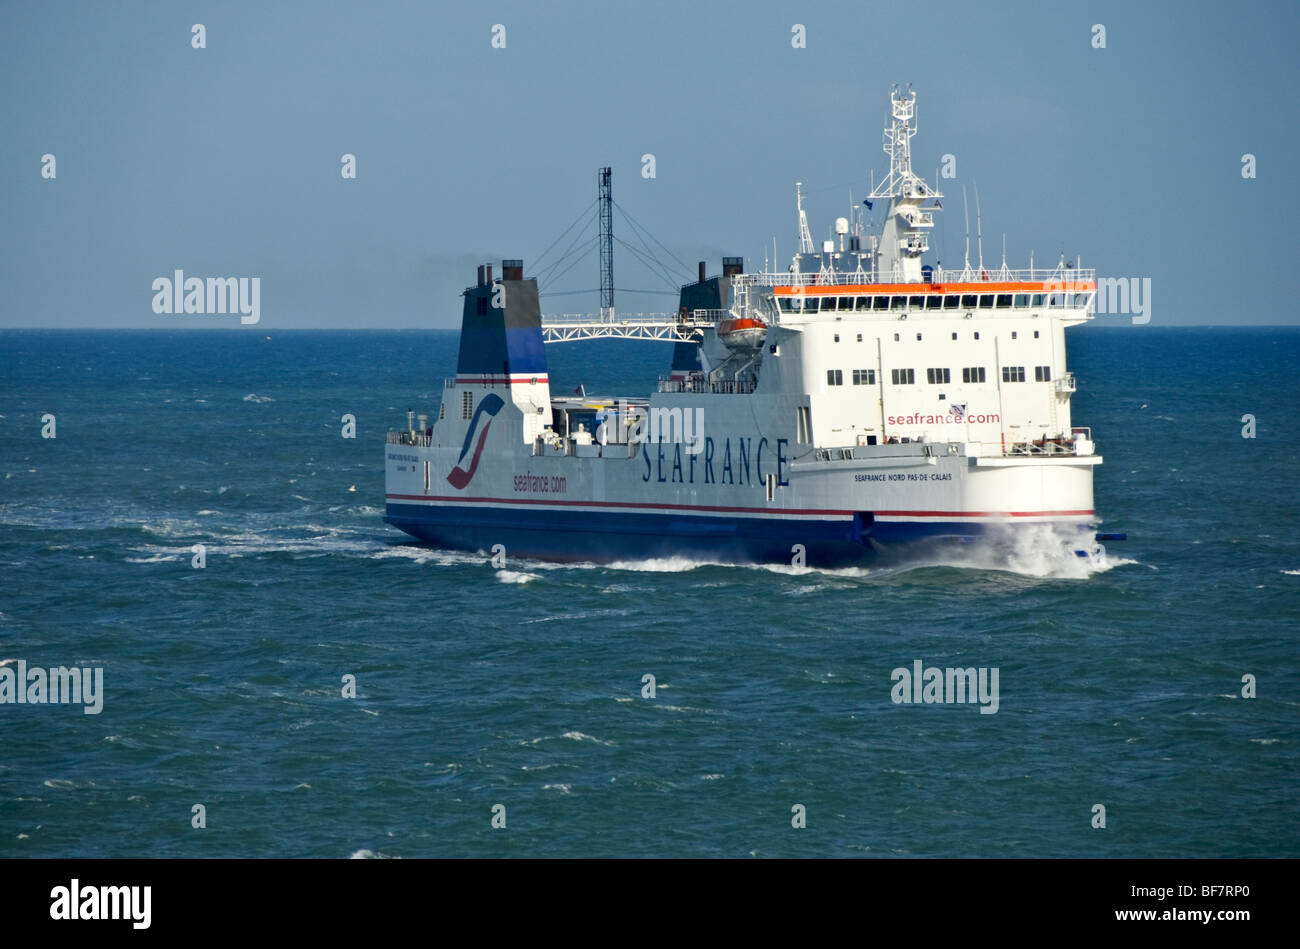 Seafrance ferry Seafrance Nord-Pas-De-Calais arrives at Dover in England - Stock Image